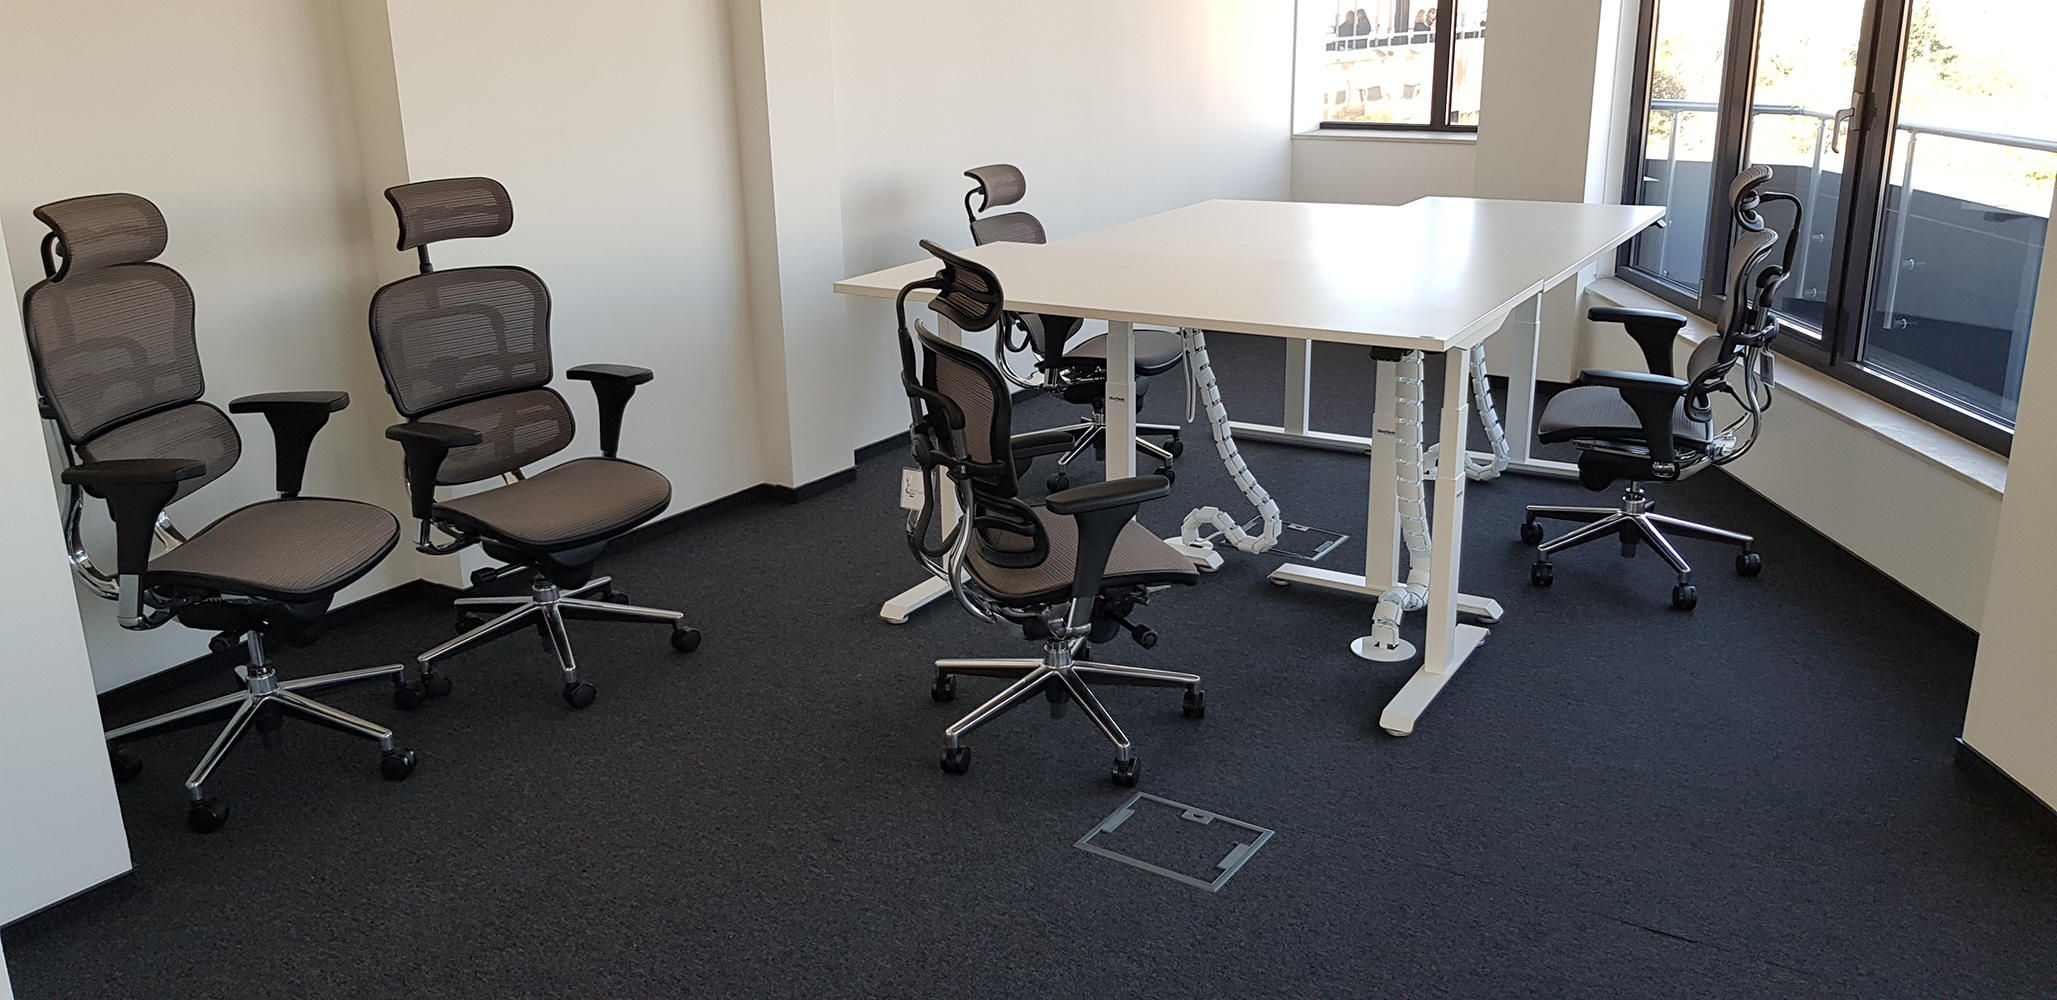 Office with White standing desks BulDesk Pro and office chairs Ergohuman Grey